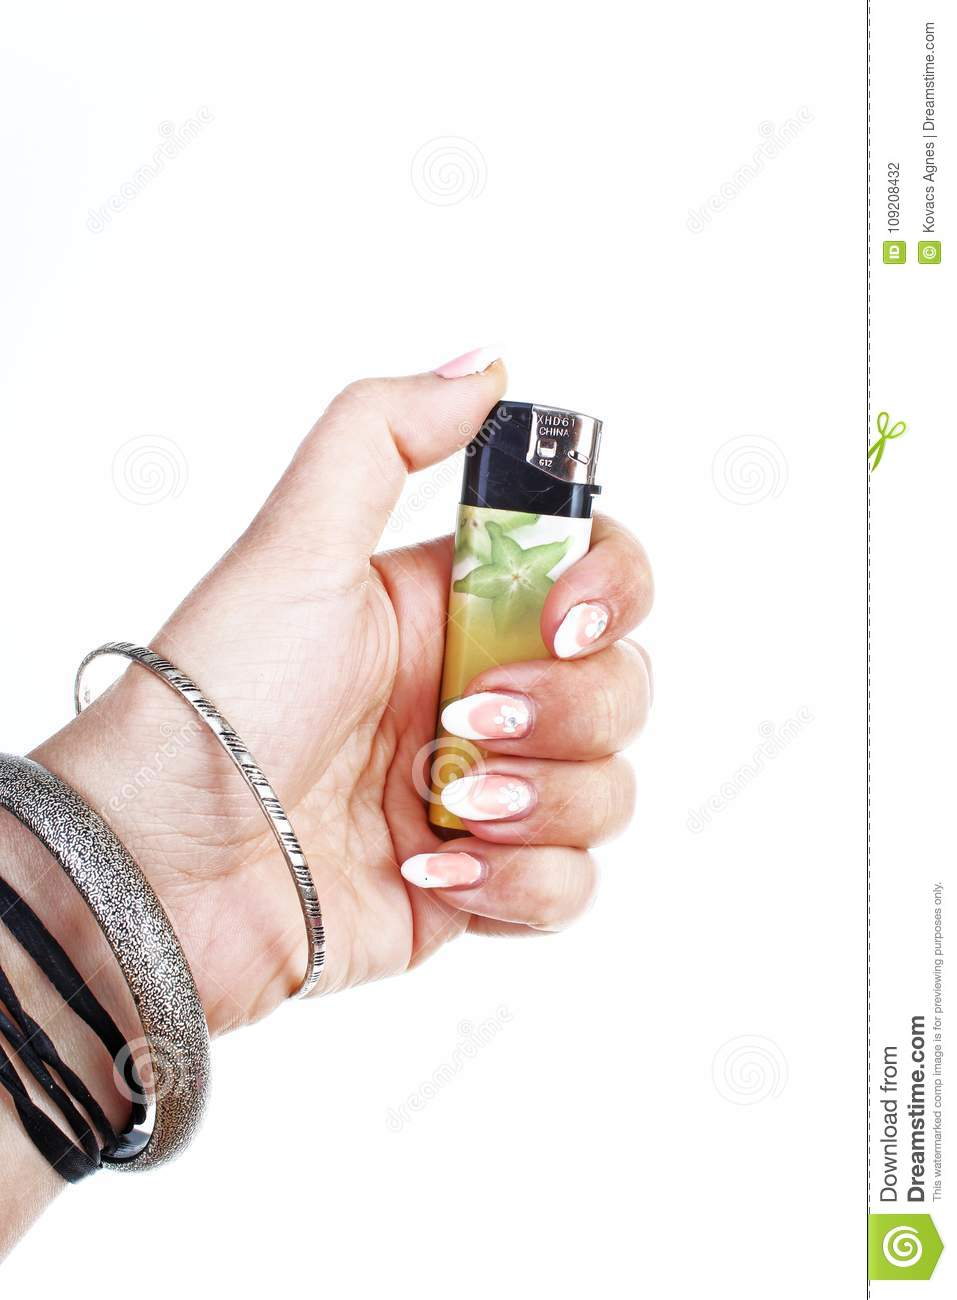 Woman Hand Holding Lighter On Isolated White Cutout